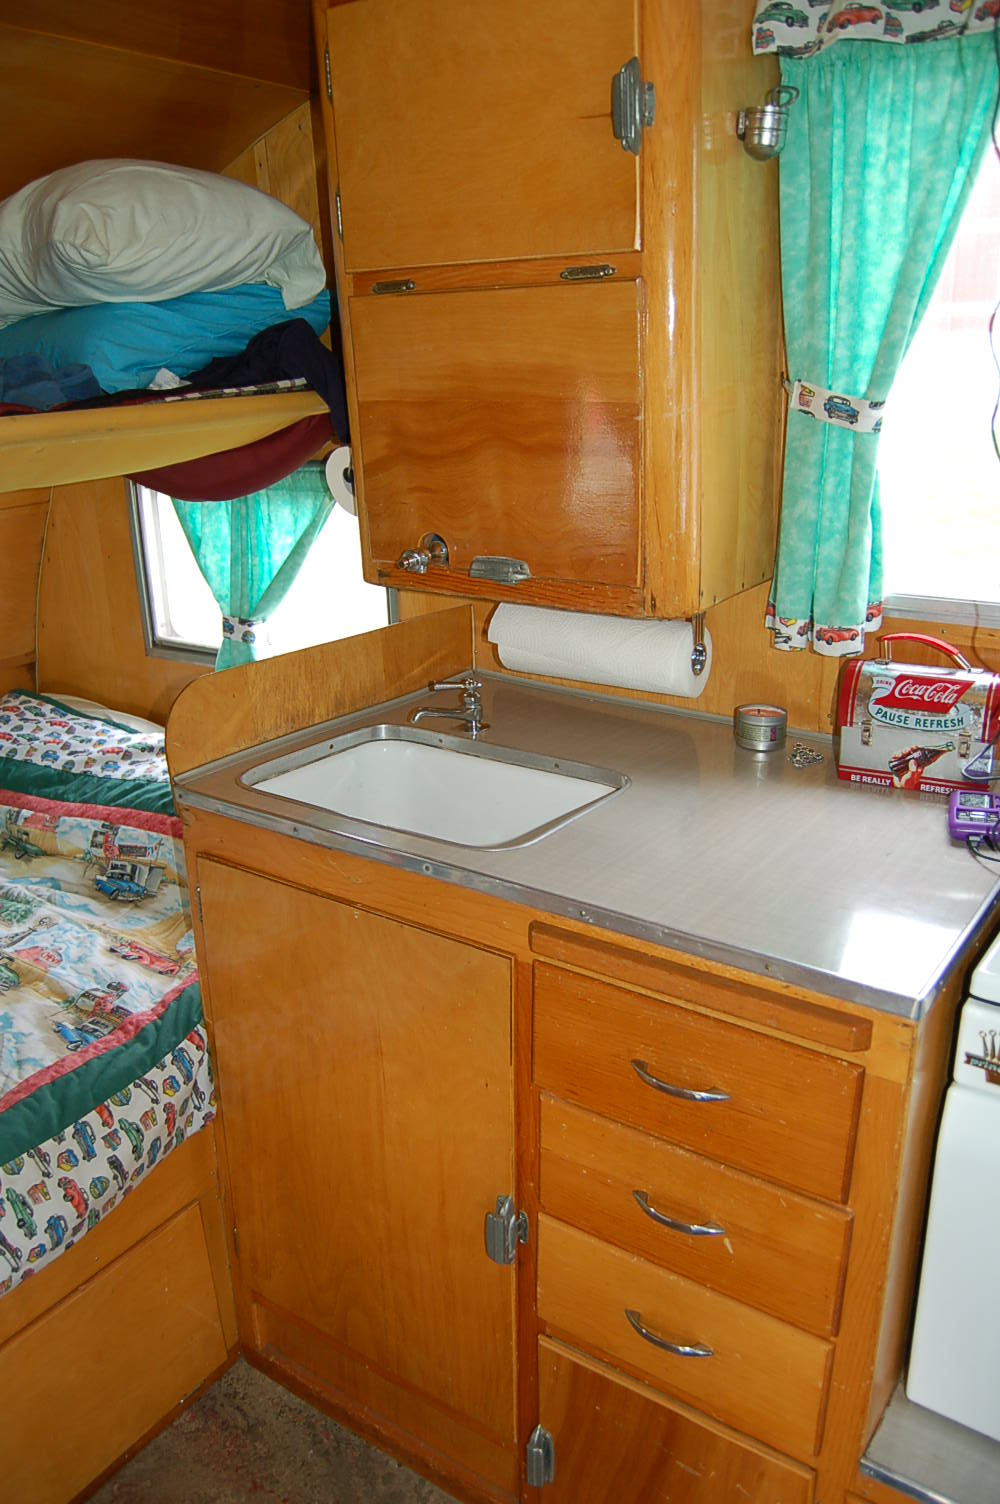 Cabinets with warm honey gold finish in vintage shasta 1500 trailer